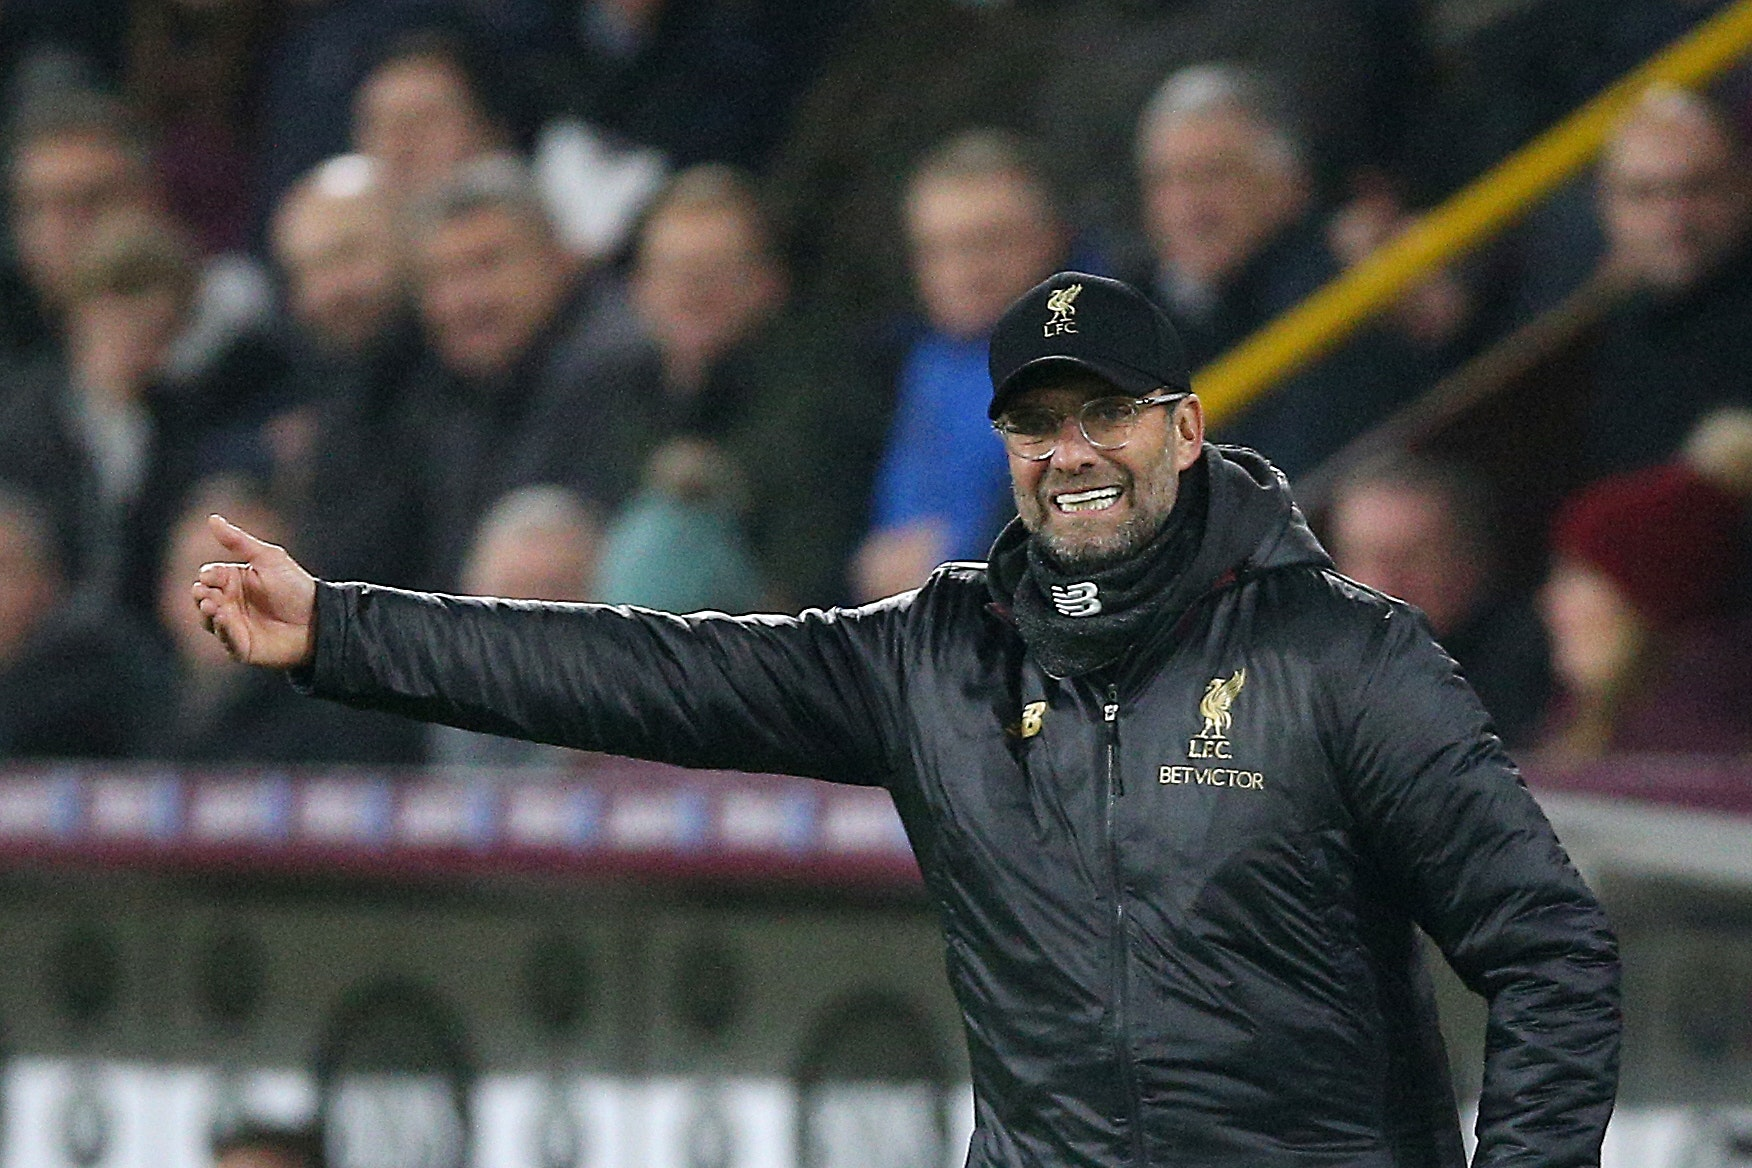 Liverpool manager Jurgen Klopp does not expect Manchester City to buckle under their pressure.